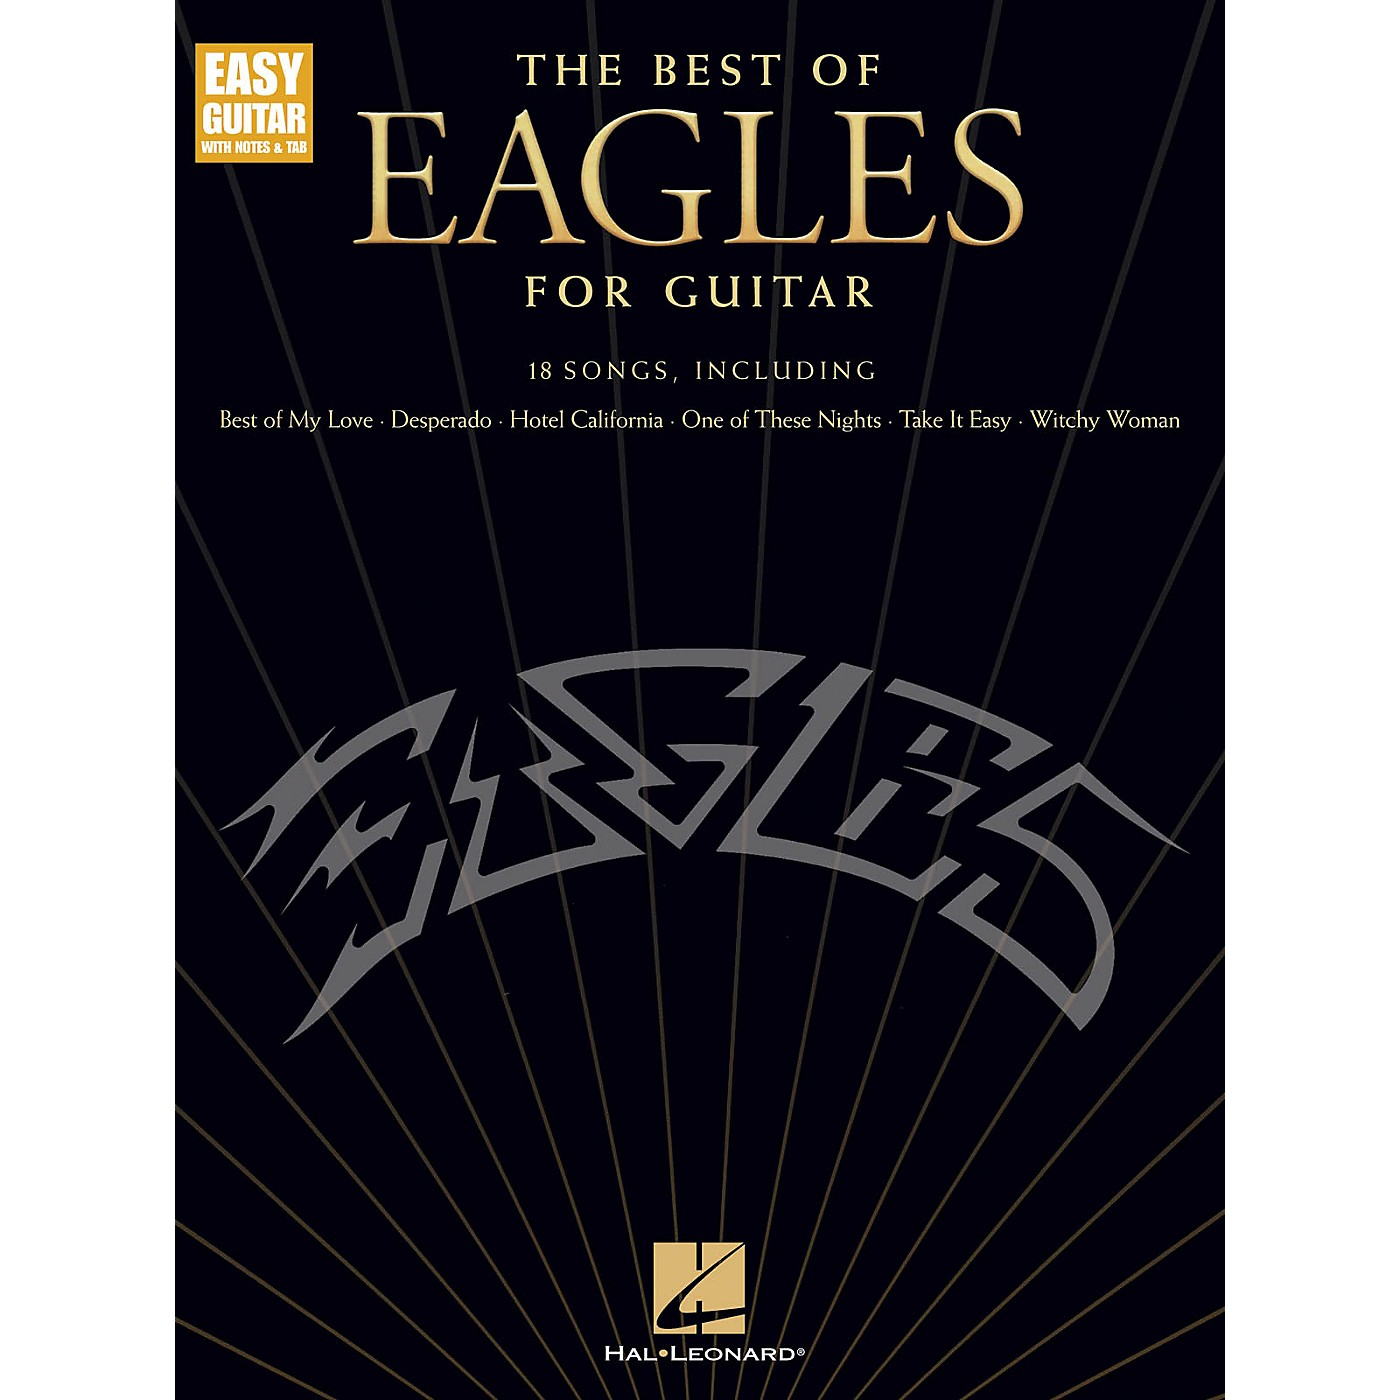 Hal Leonard The Best of Eagles for Guitar - Easy Guitar Songbook (Updated Edition) thumbnail